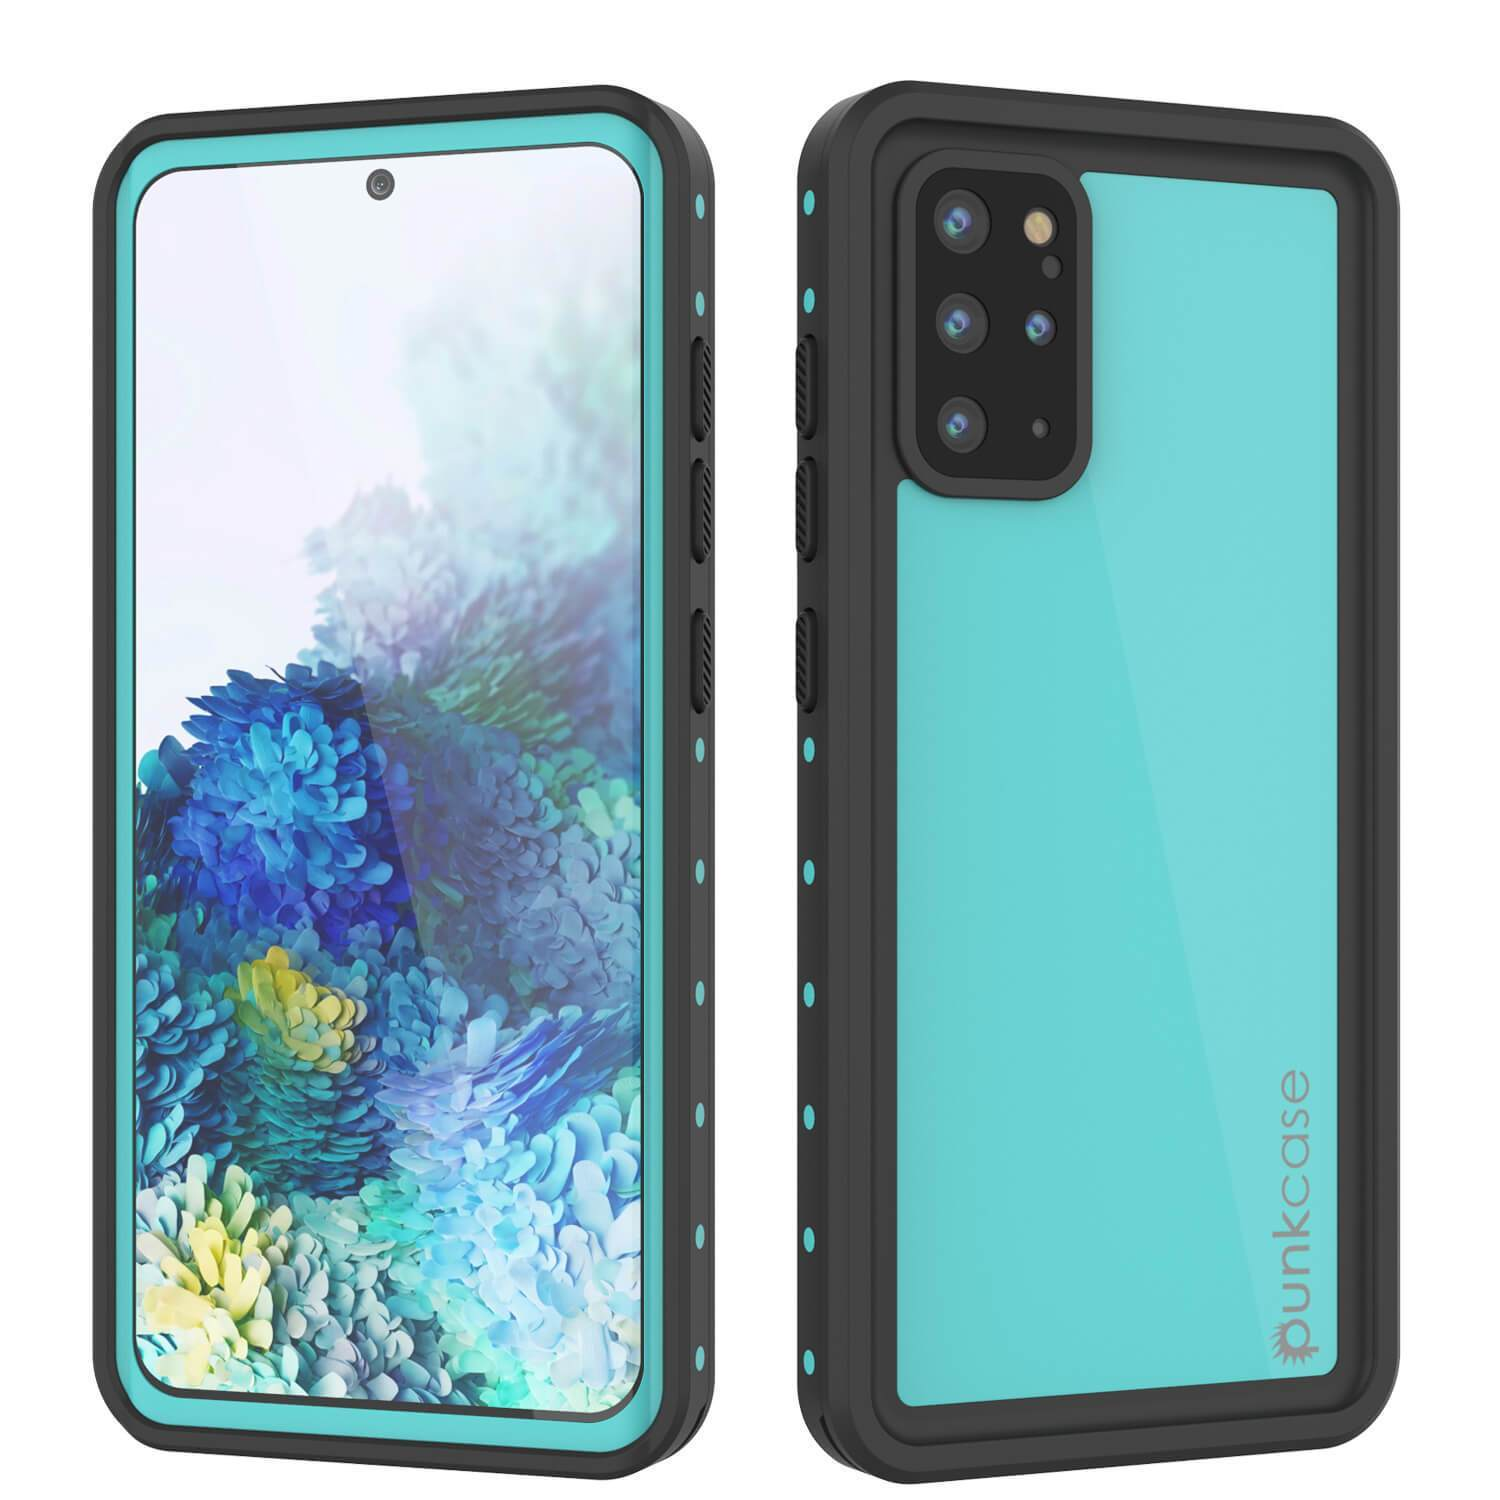 Galaxy S20+ Plus Waterproof Case PunkCase StudStar Teal Thin 6.6ft Underwater IP68 Shock/Snow Proof